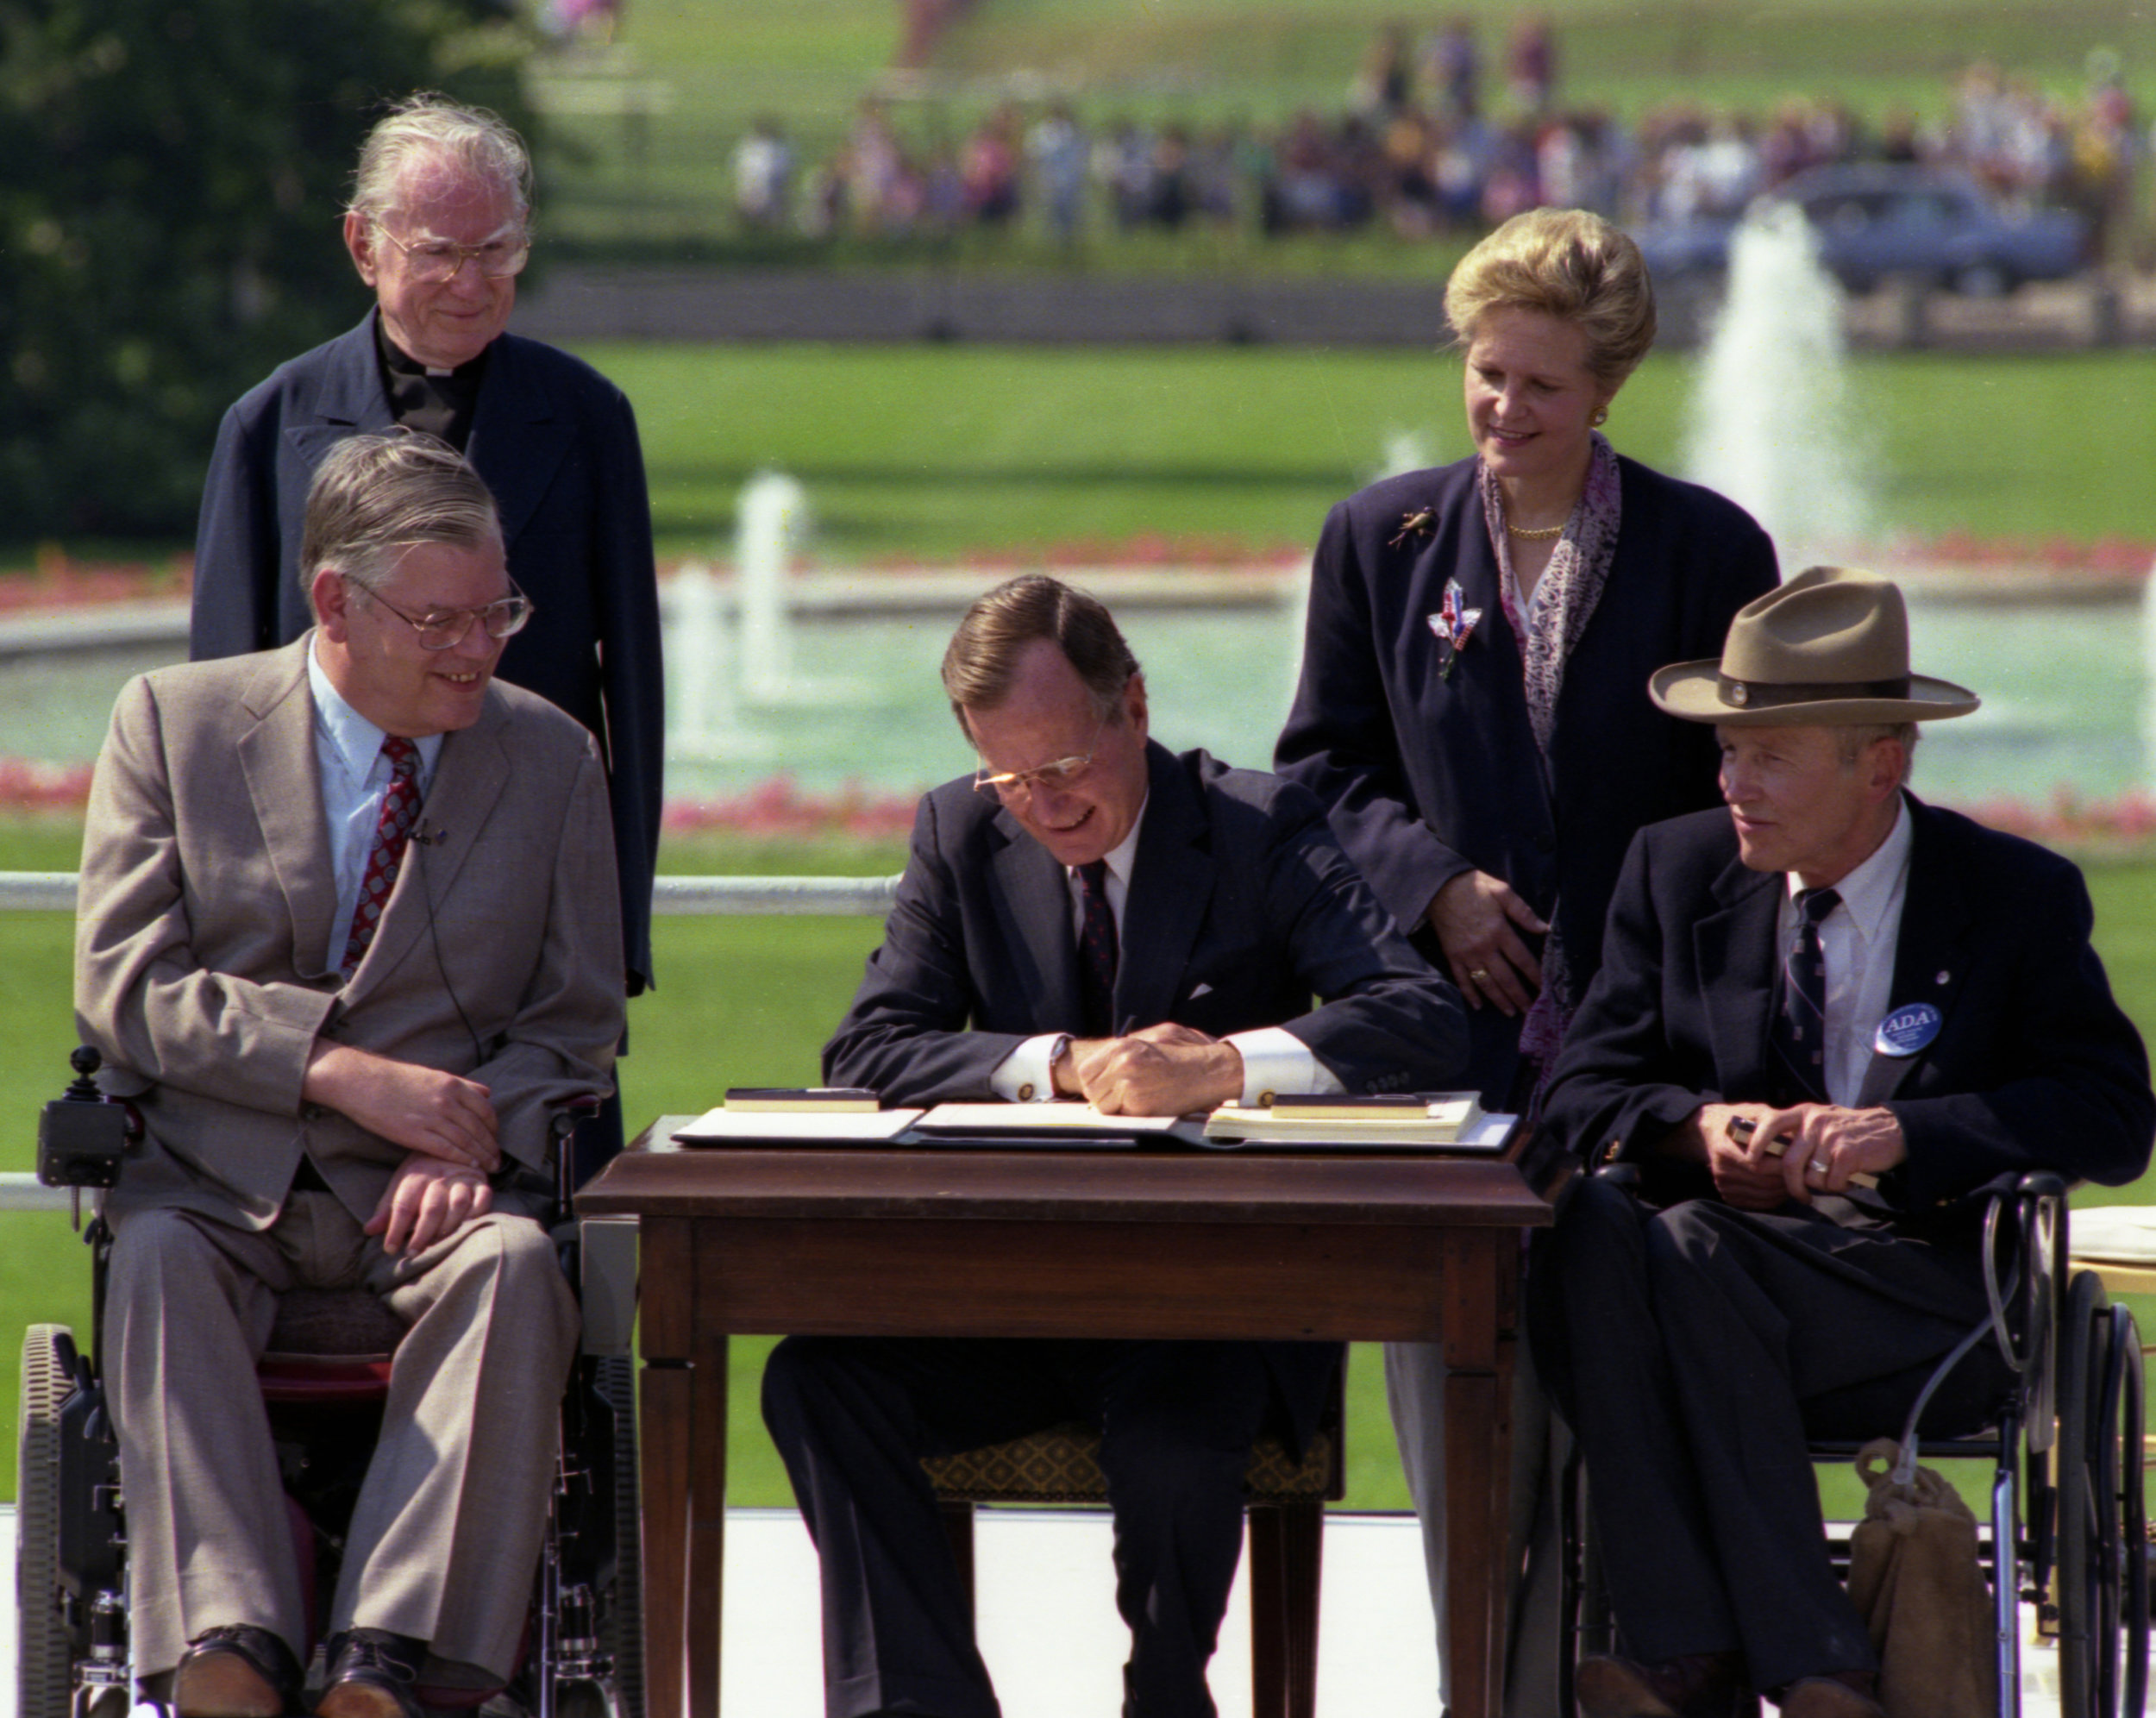 President Bush Signs ADA, Wikimedia Commons, Licensed under CC